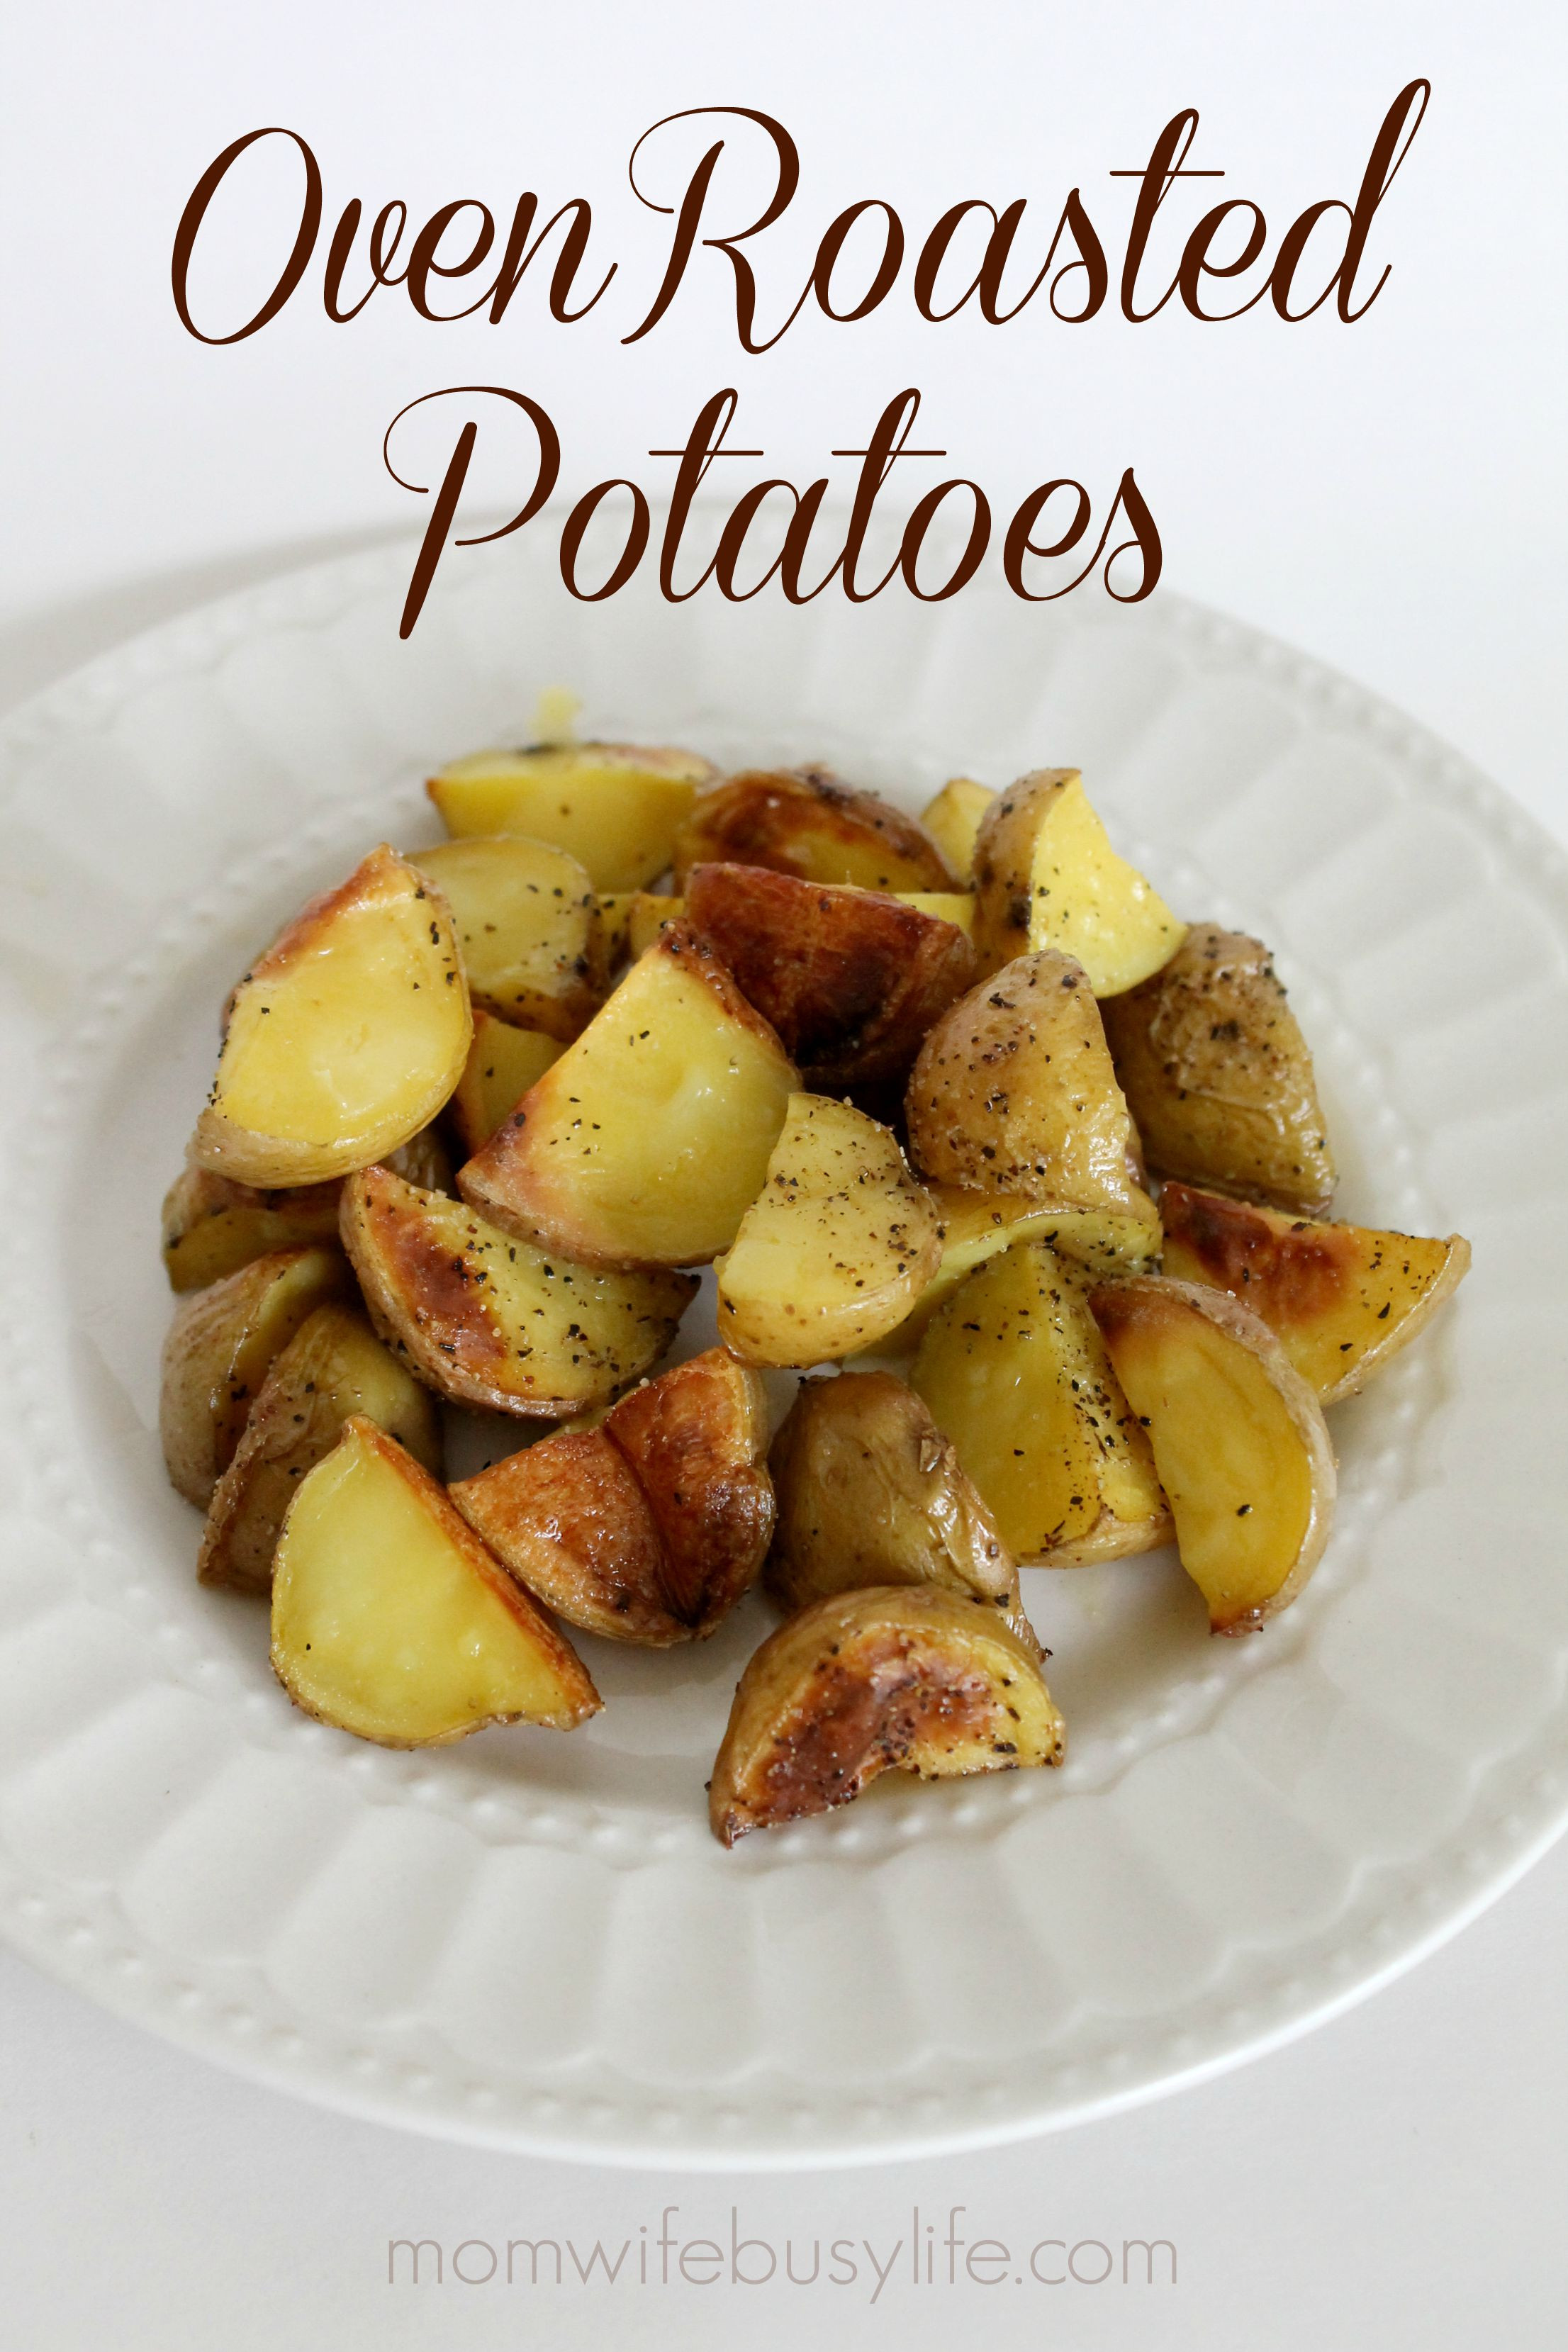 Simple Potato Recipes  Easy Oven Roasted Potatoes Mom Wife Busy Life